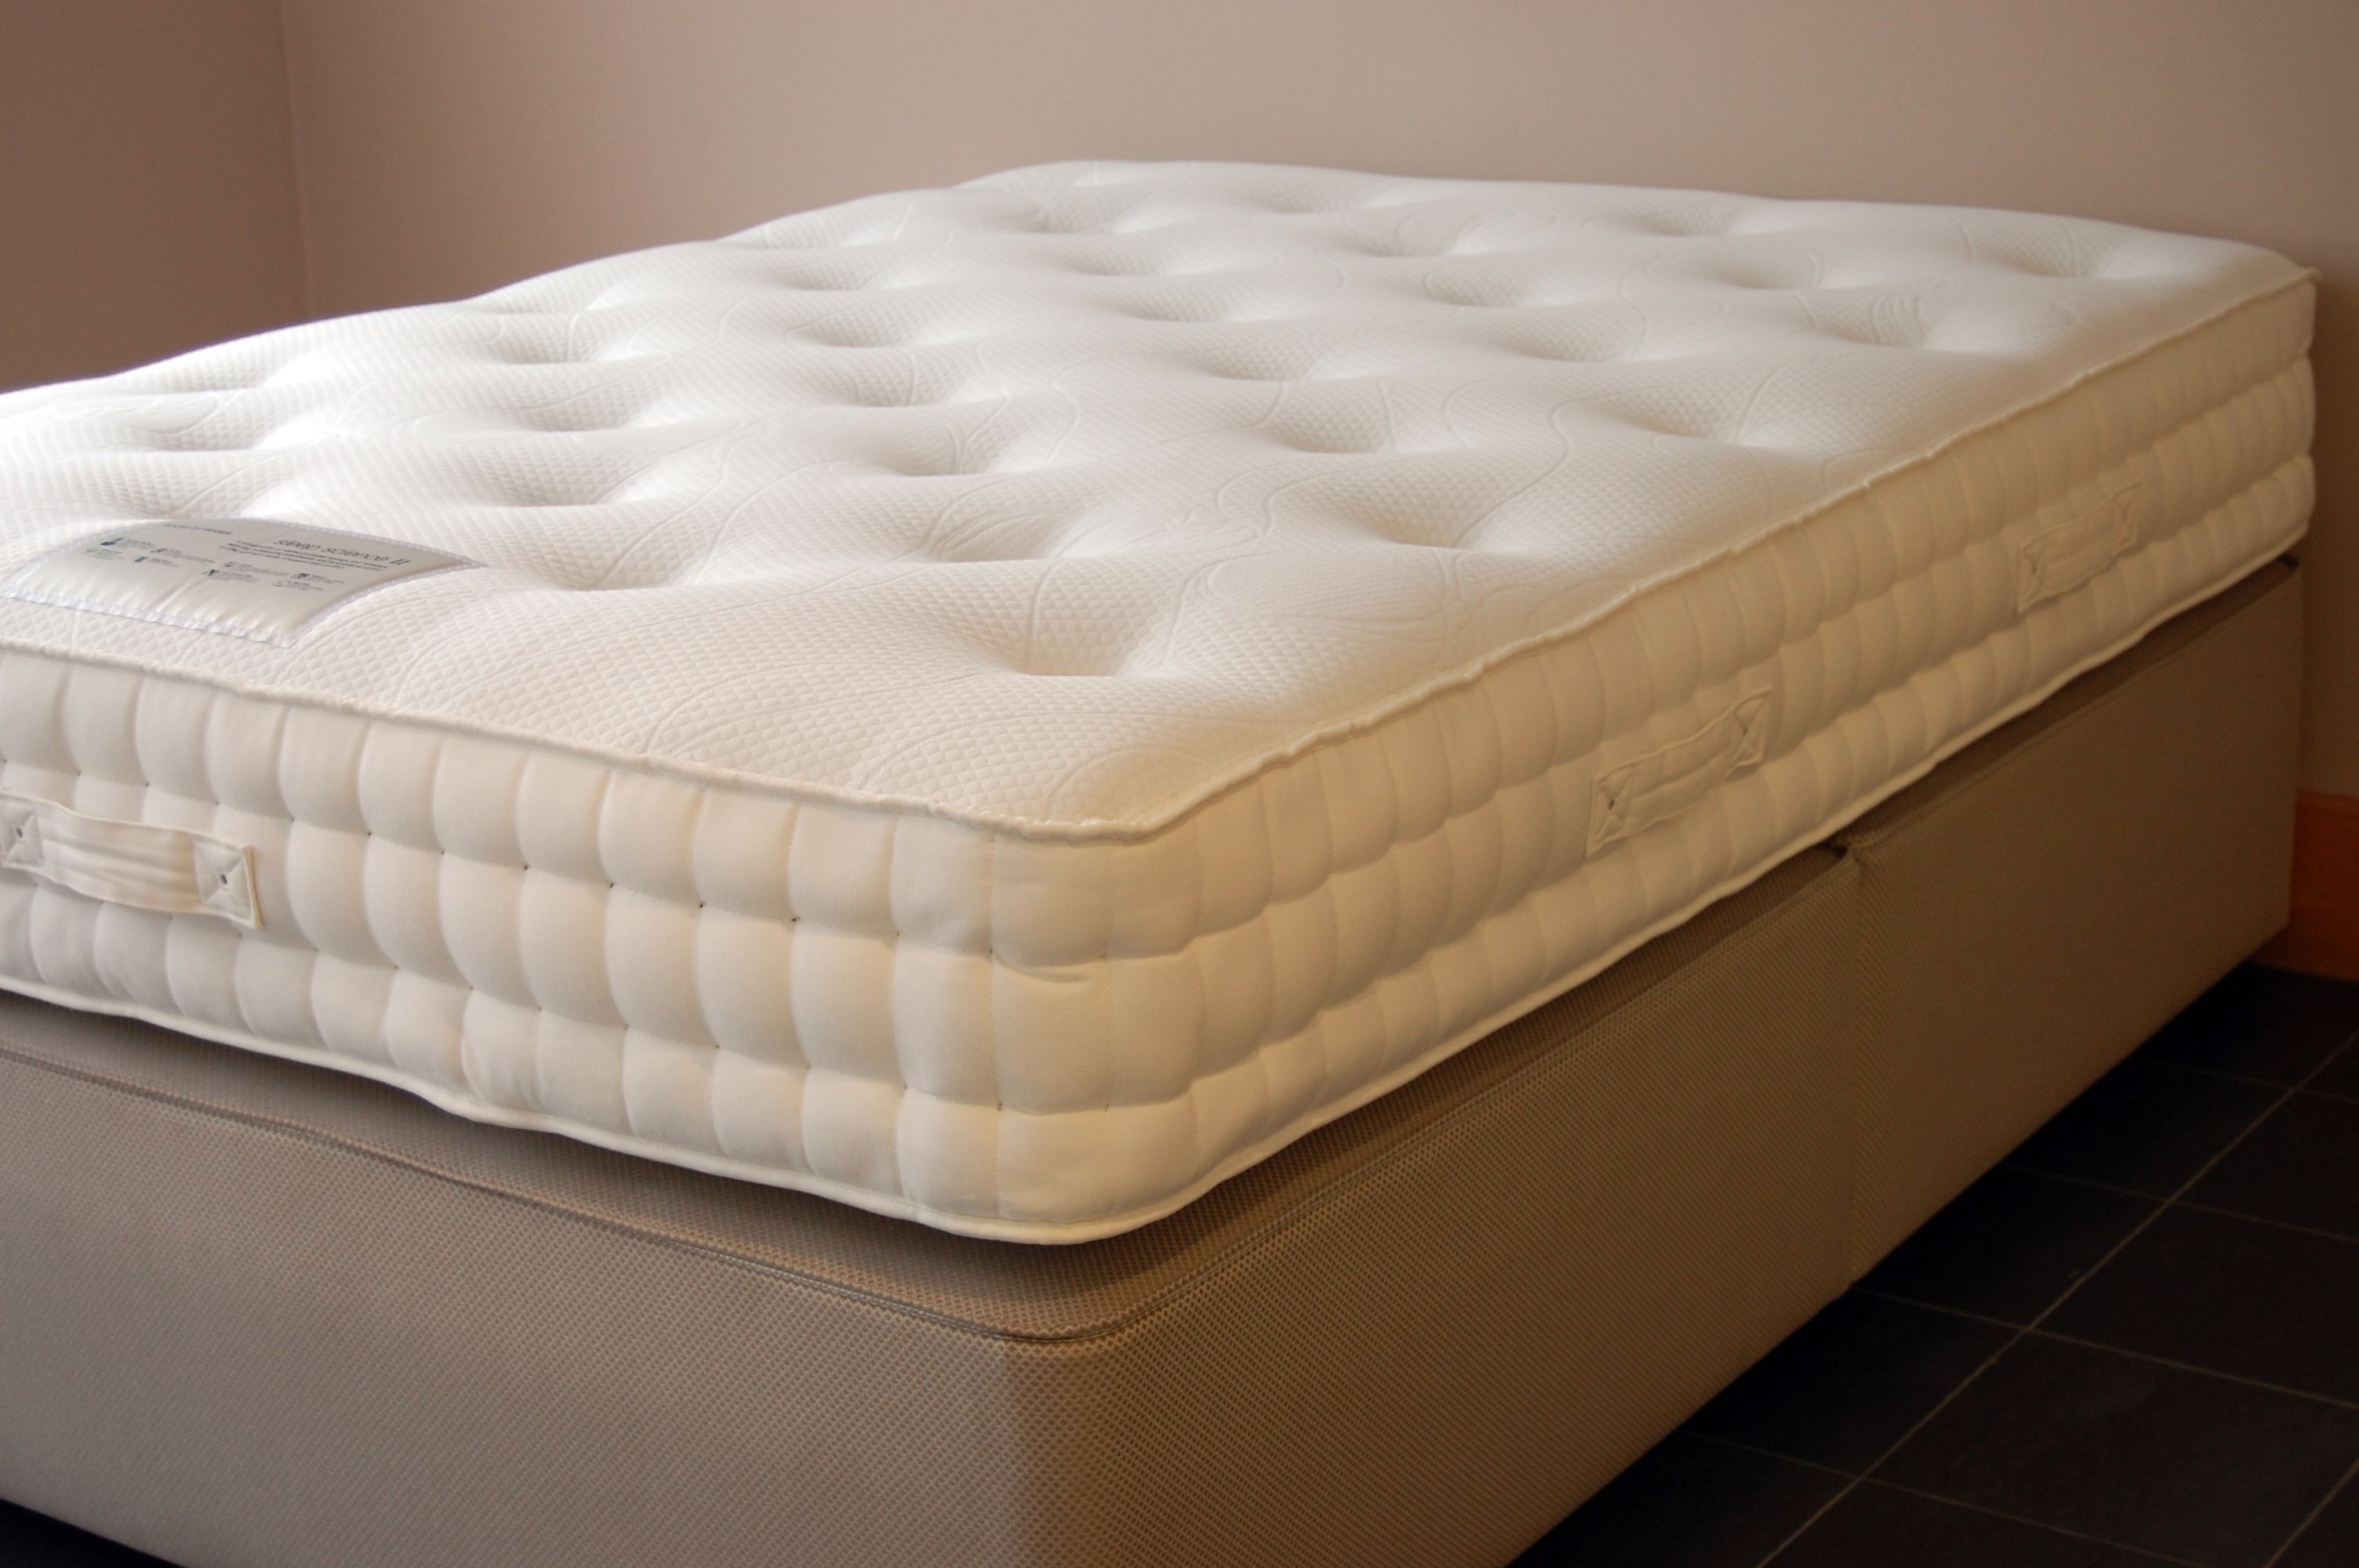 Relyon Sleep Science 11 King Mattress And Divan Review Compare Prices Buy Online